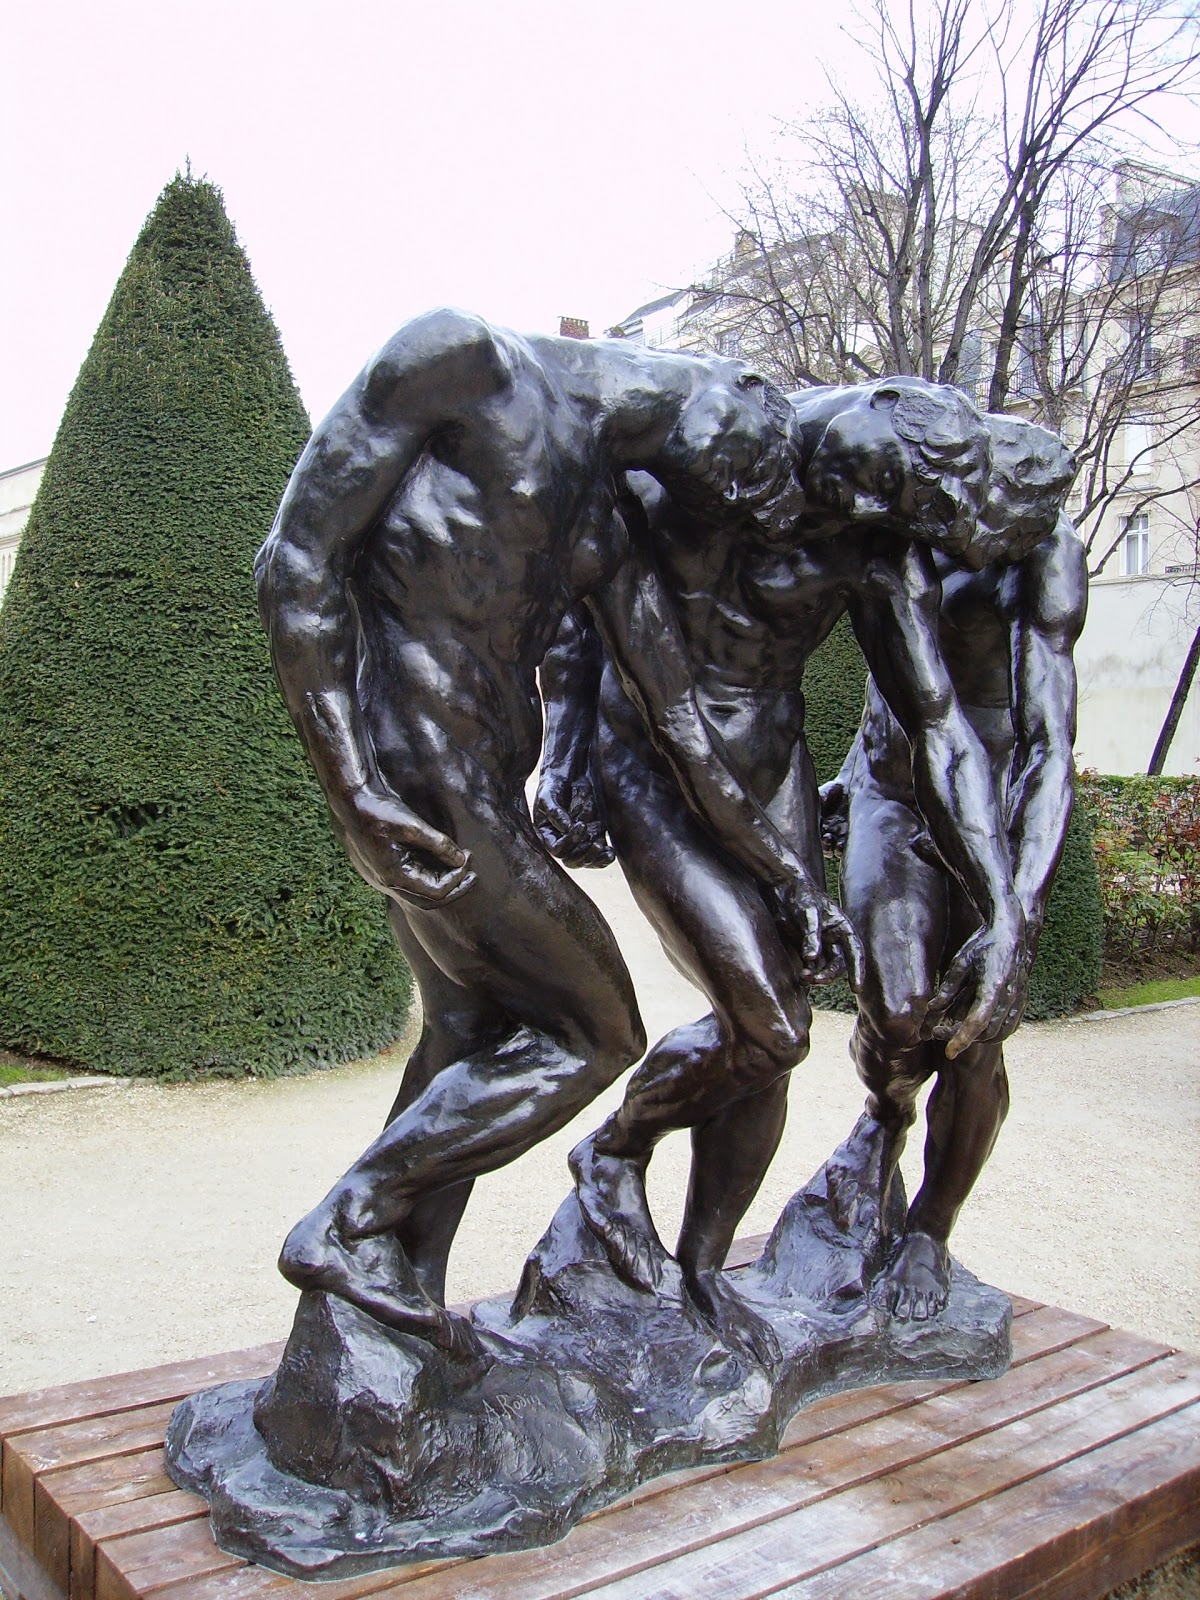 http://upload.wikimedia.org/wikipedia/commons/1/1b/Auguste_Rodin-The_three_shades-Mus%C3%A9e_Rodin.jpg